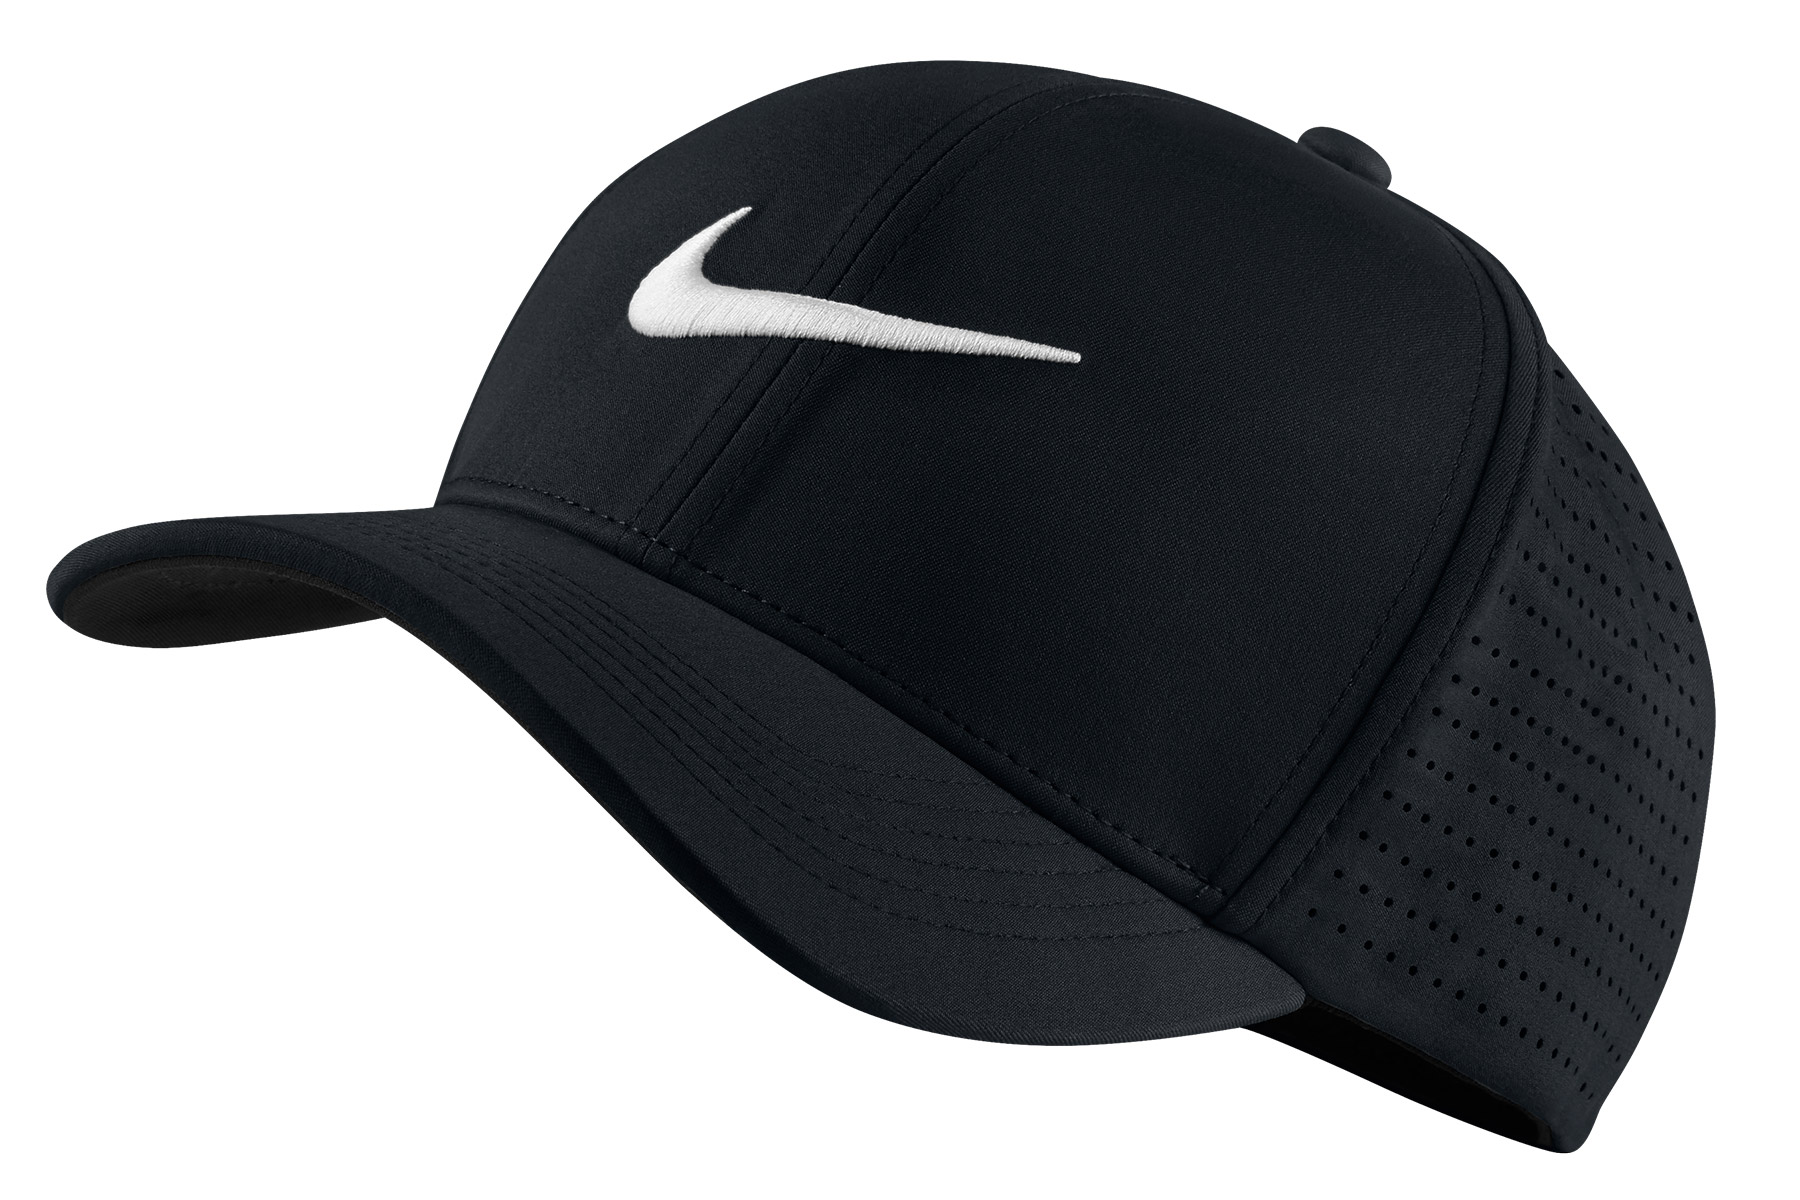 nike golf classic 99 cap from american golf. Black Bedroom Furniture Sets. Home Design Ideas